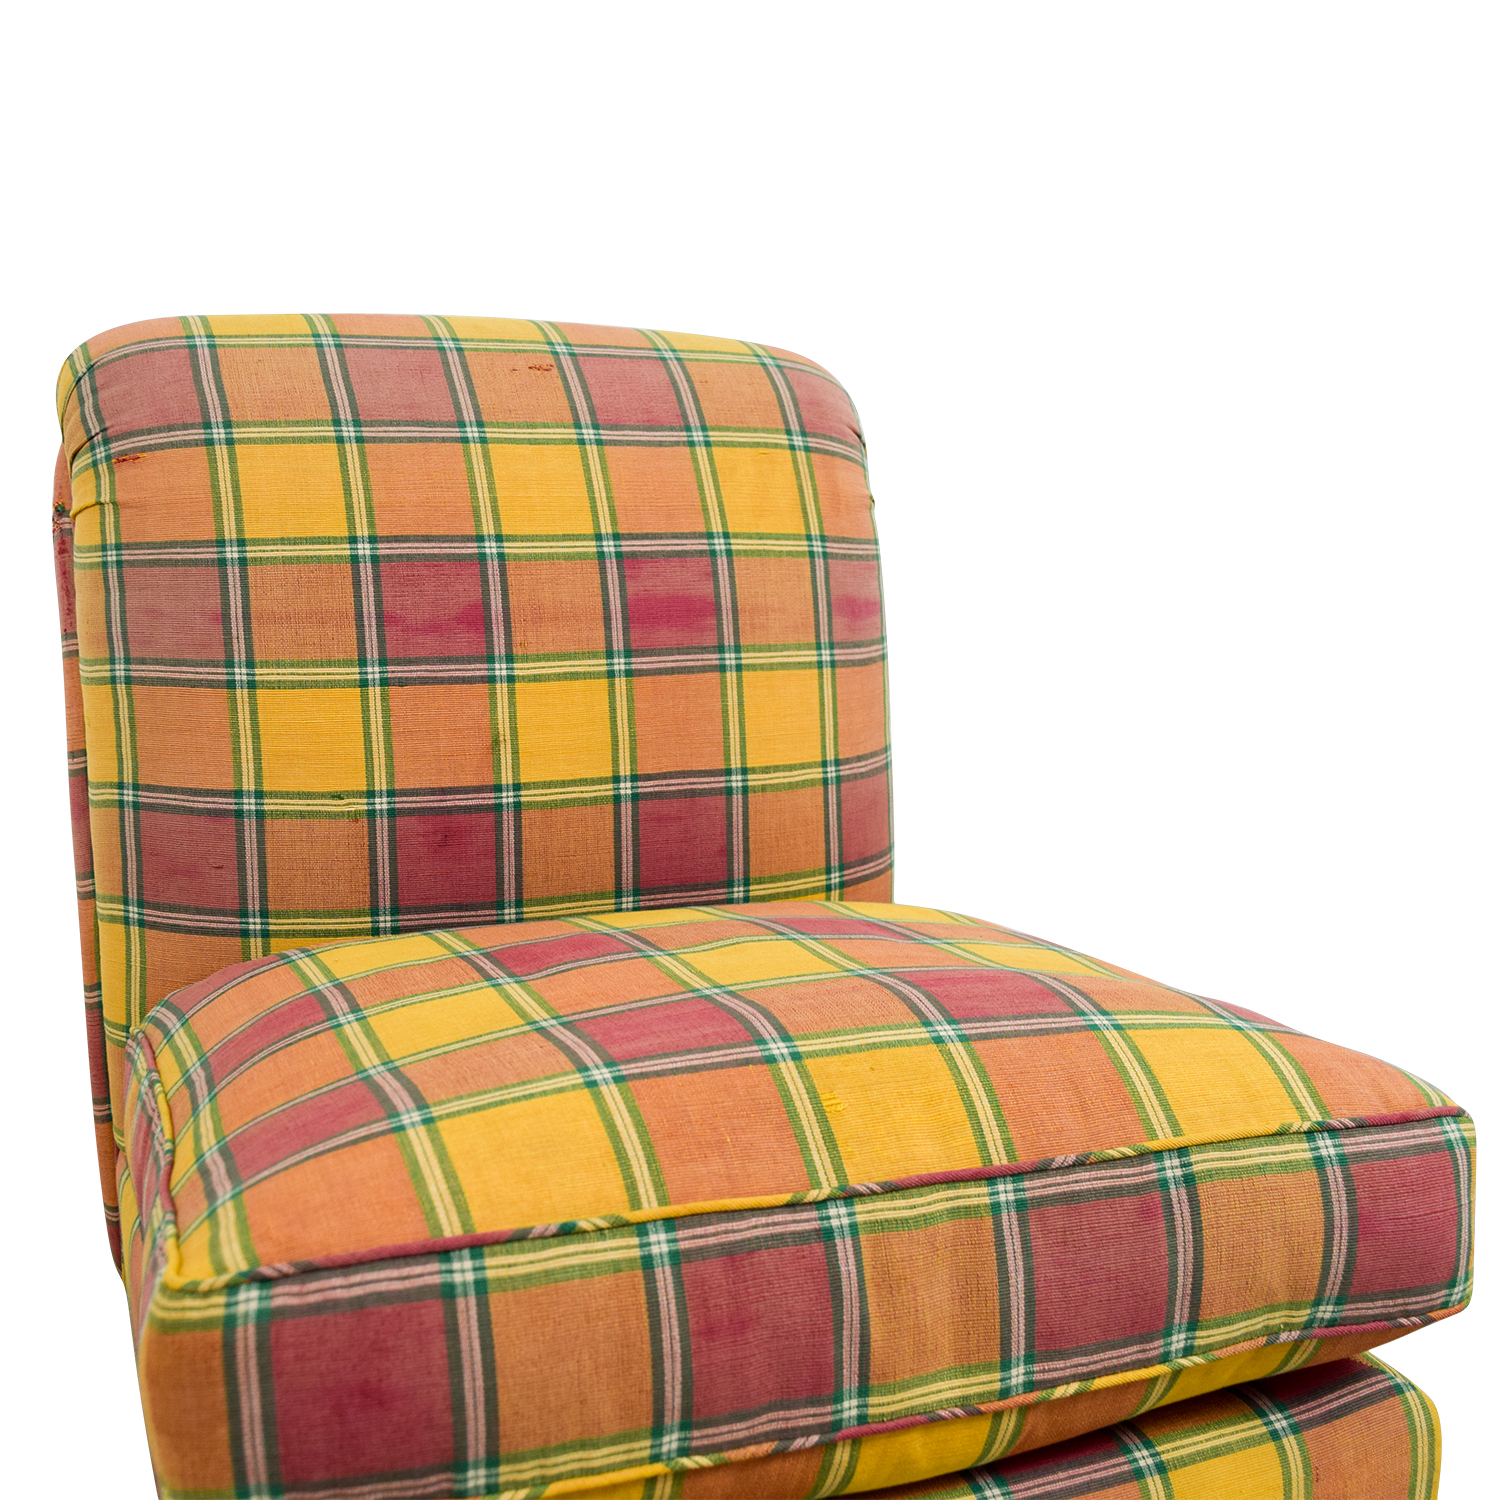 Furniture Masters Furniture Masters Red and Yellow Plaid Accent Chair dimensions